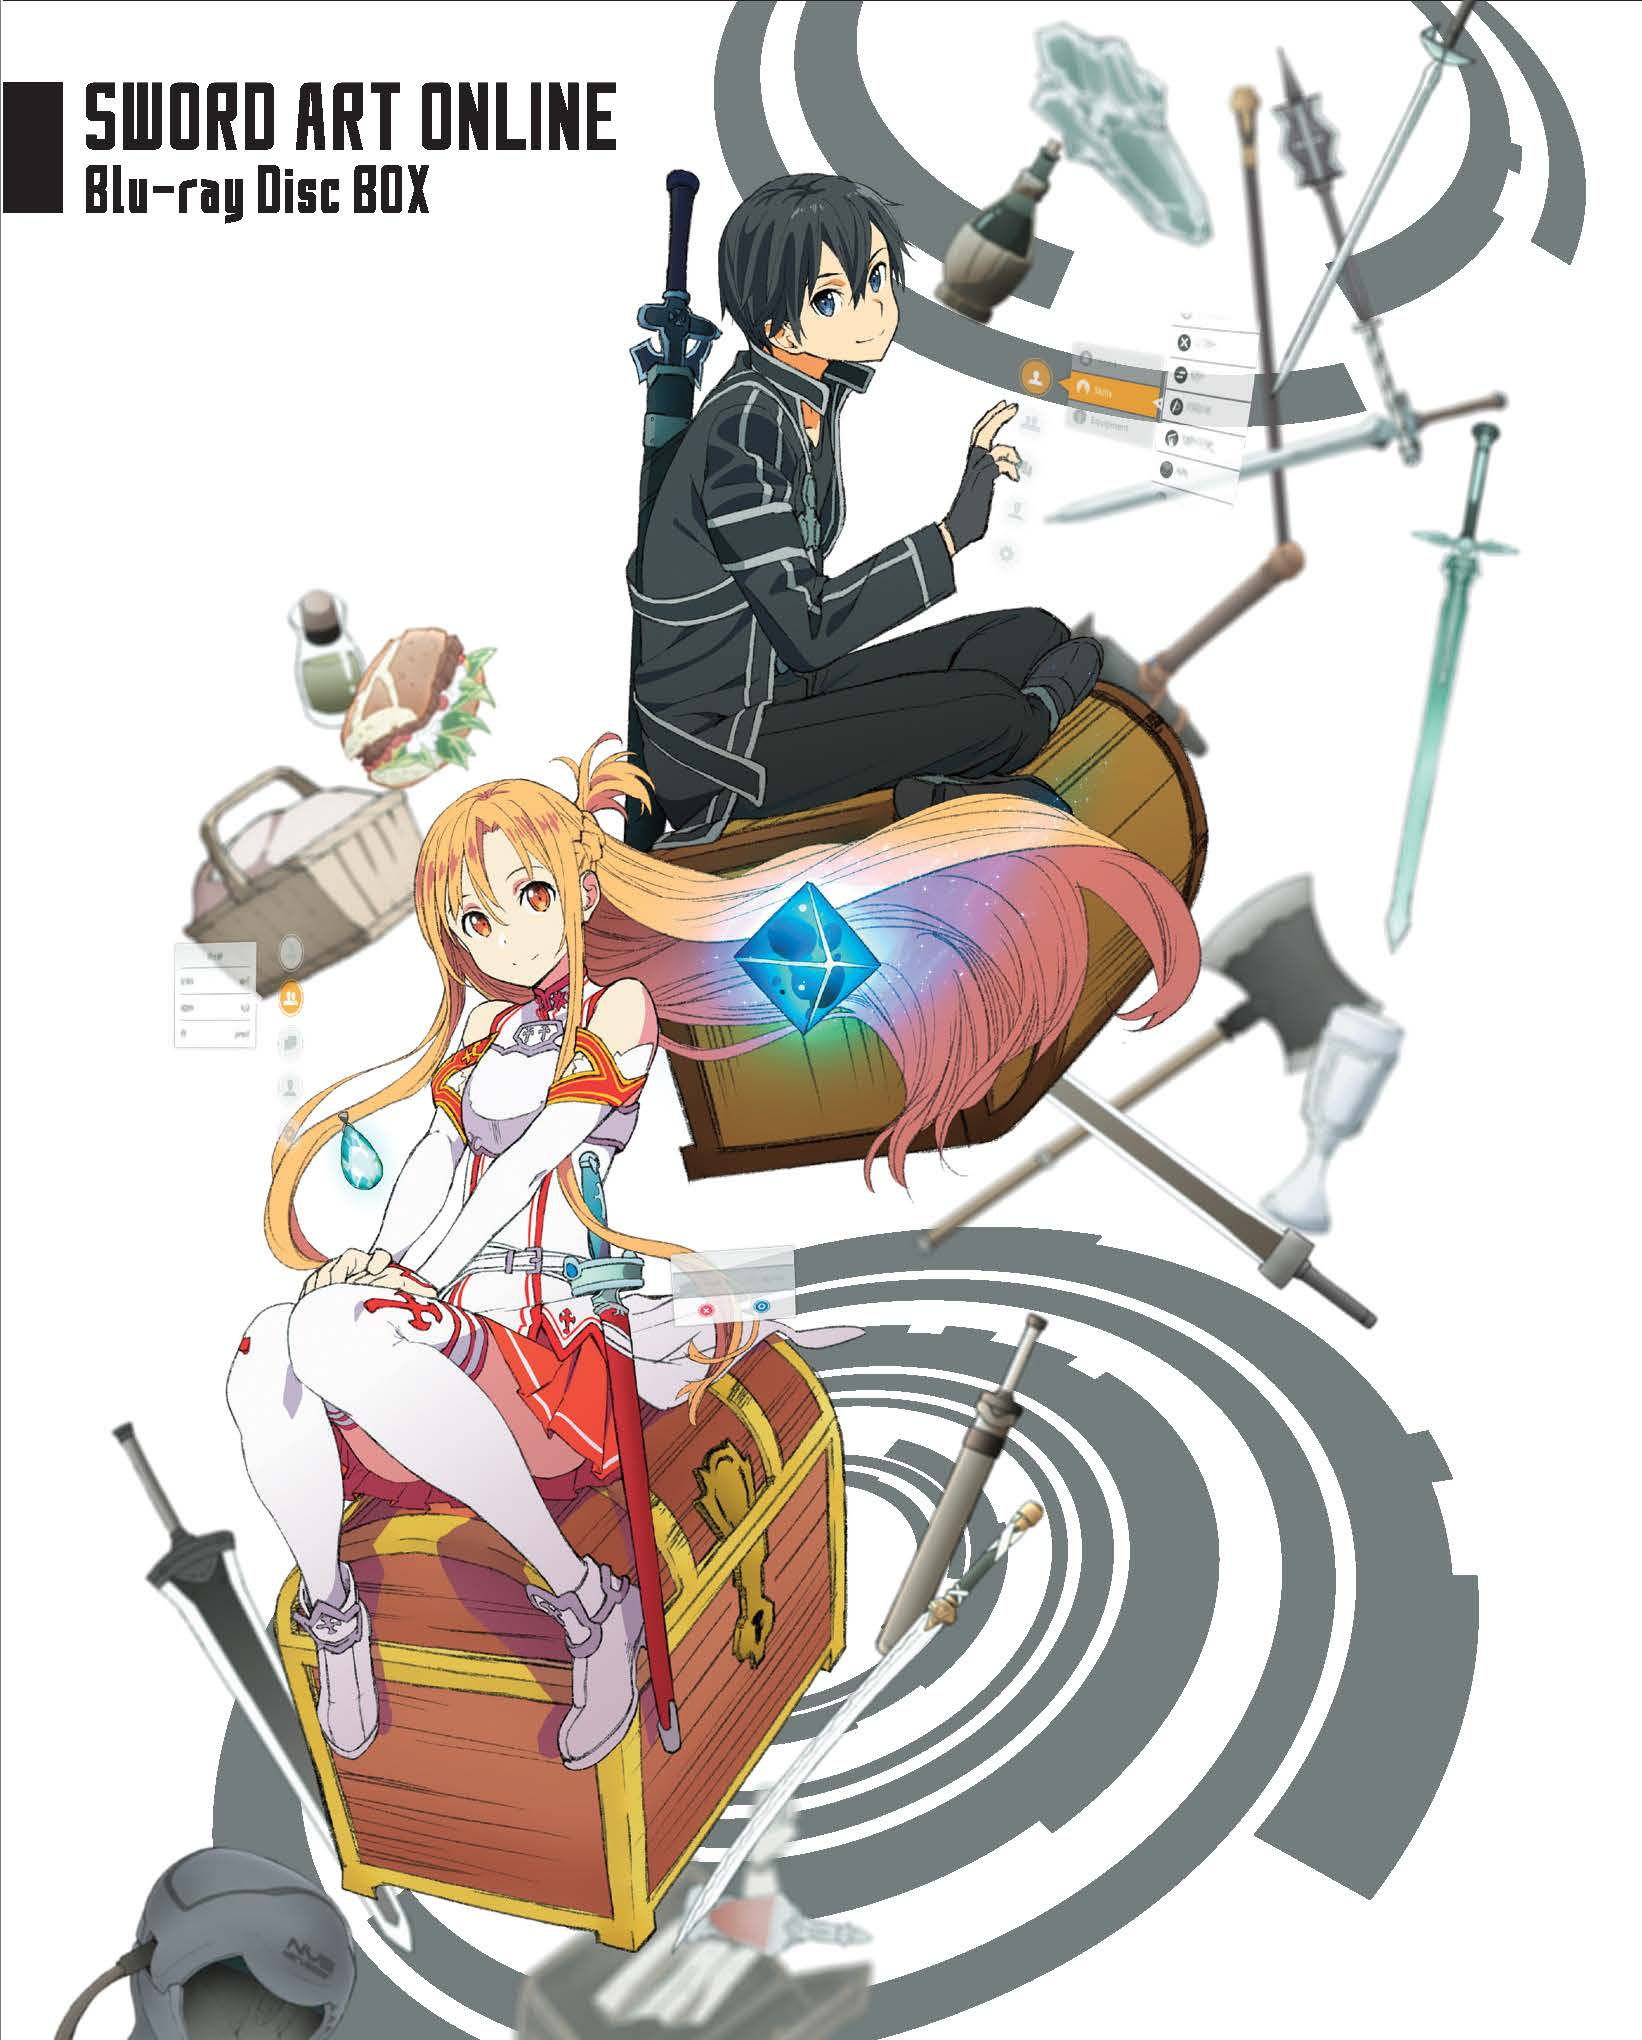 Sword Art Online Box Set Blu-ray 816546020828